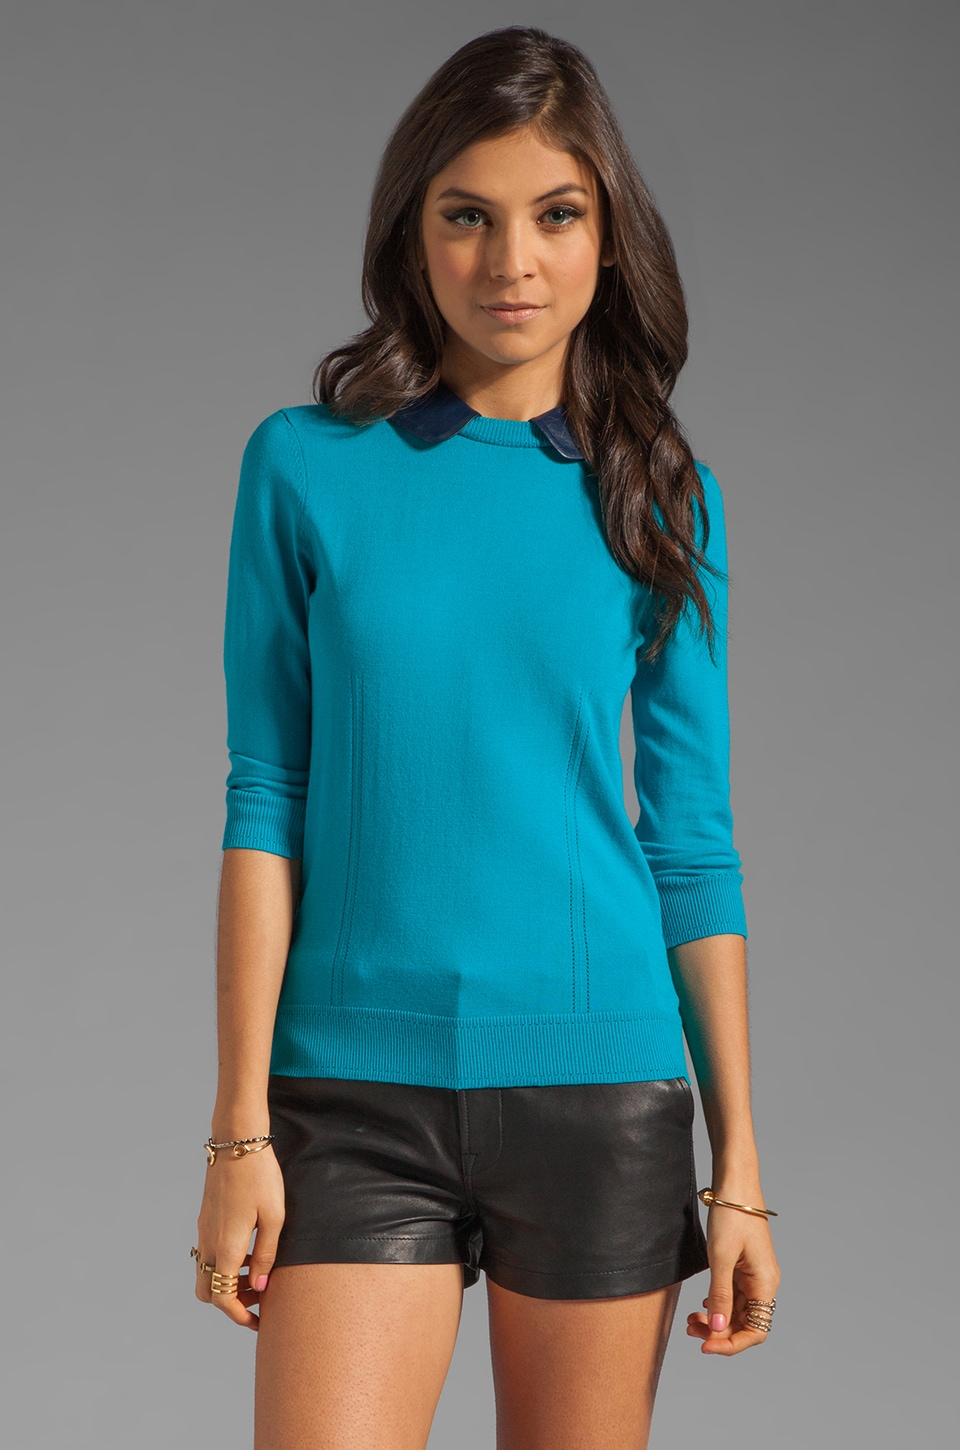 MILLY November Knit Leather Collar Sweater in Aqua and Navy